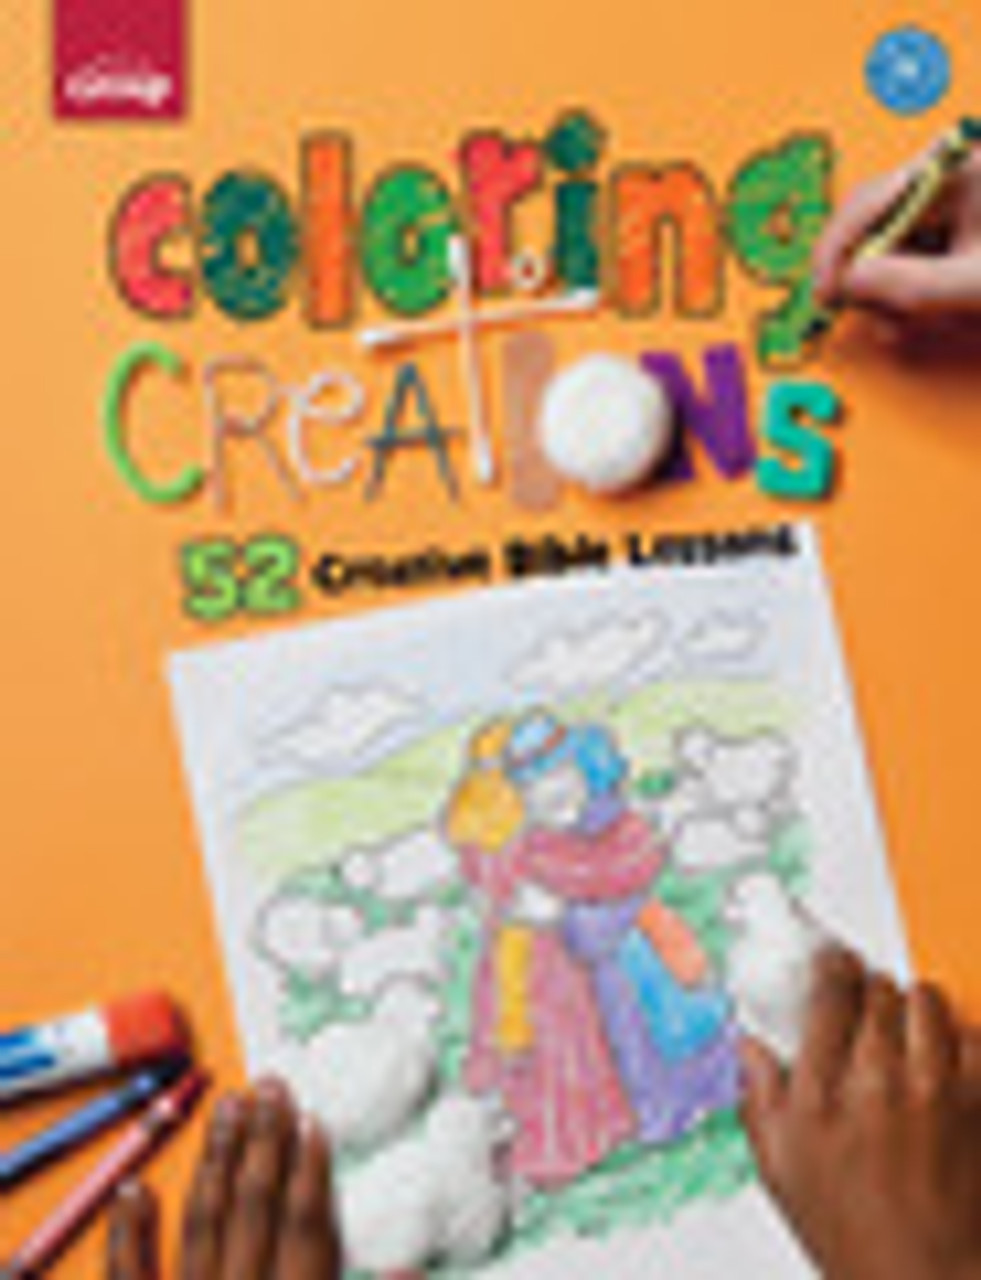 Coloring Creations